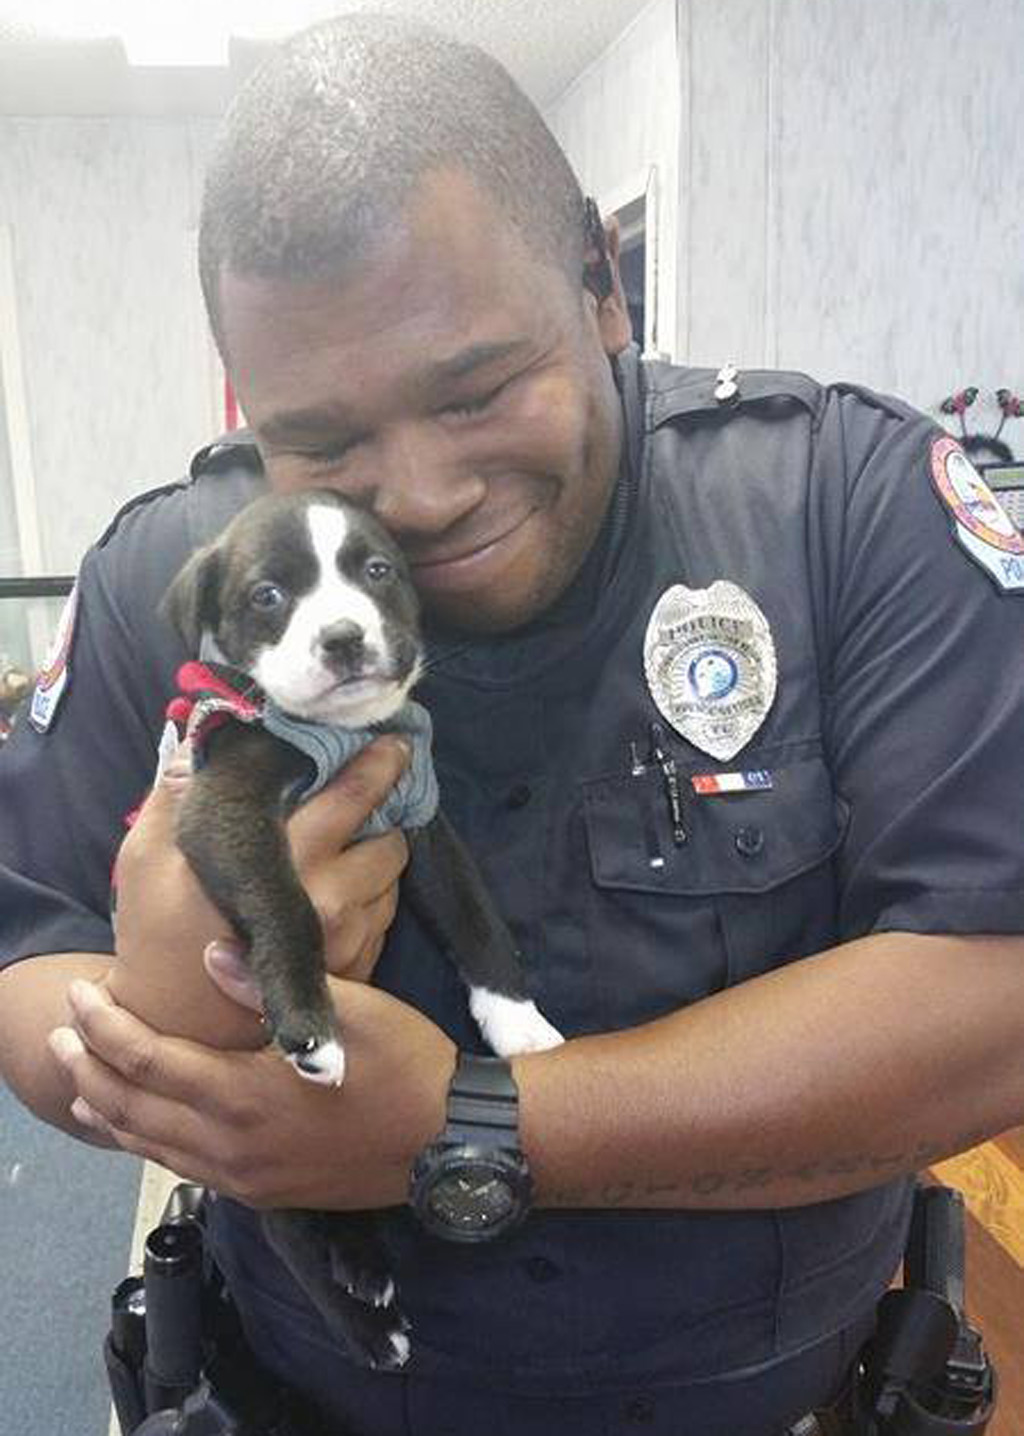 The tiny pup was left outside the shelter in a basket. (Panhandle Animal Welfare Society)